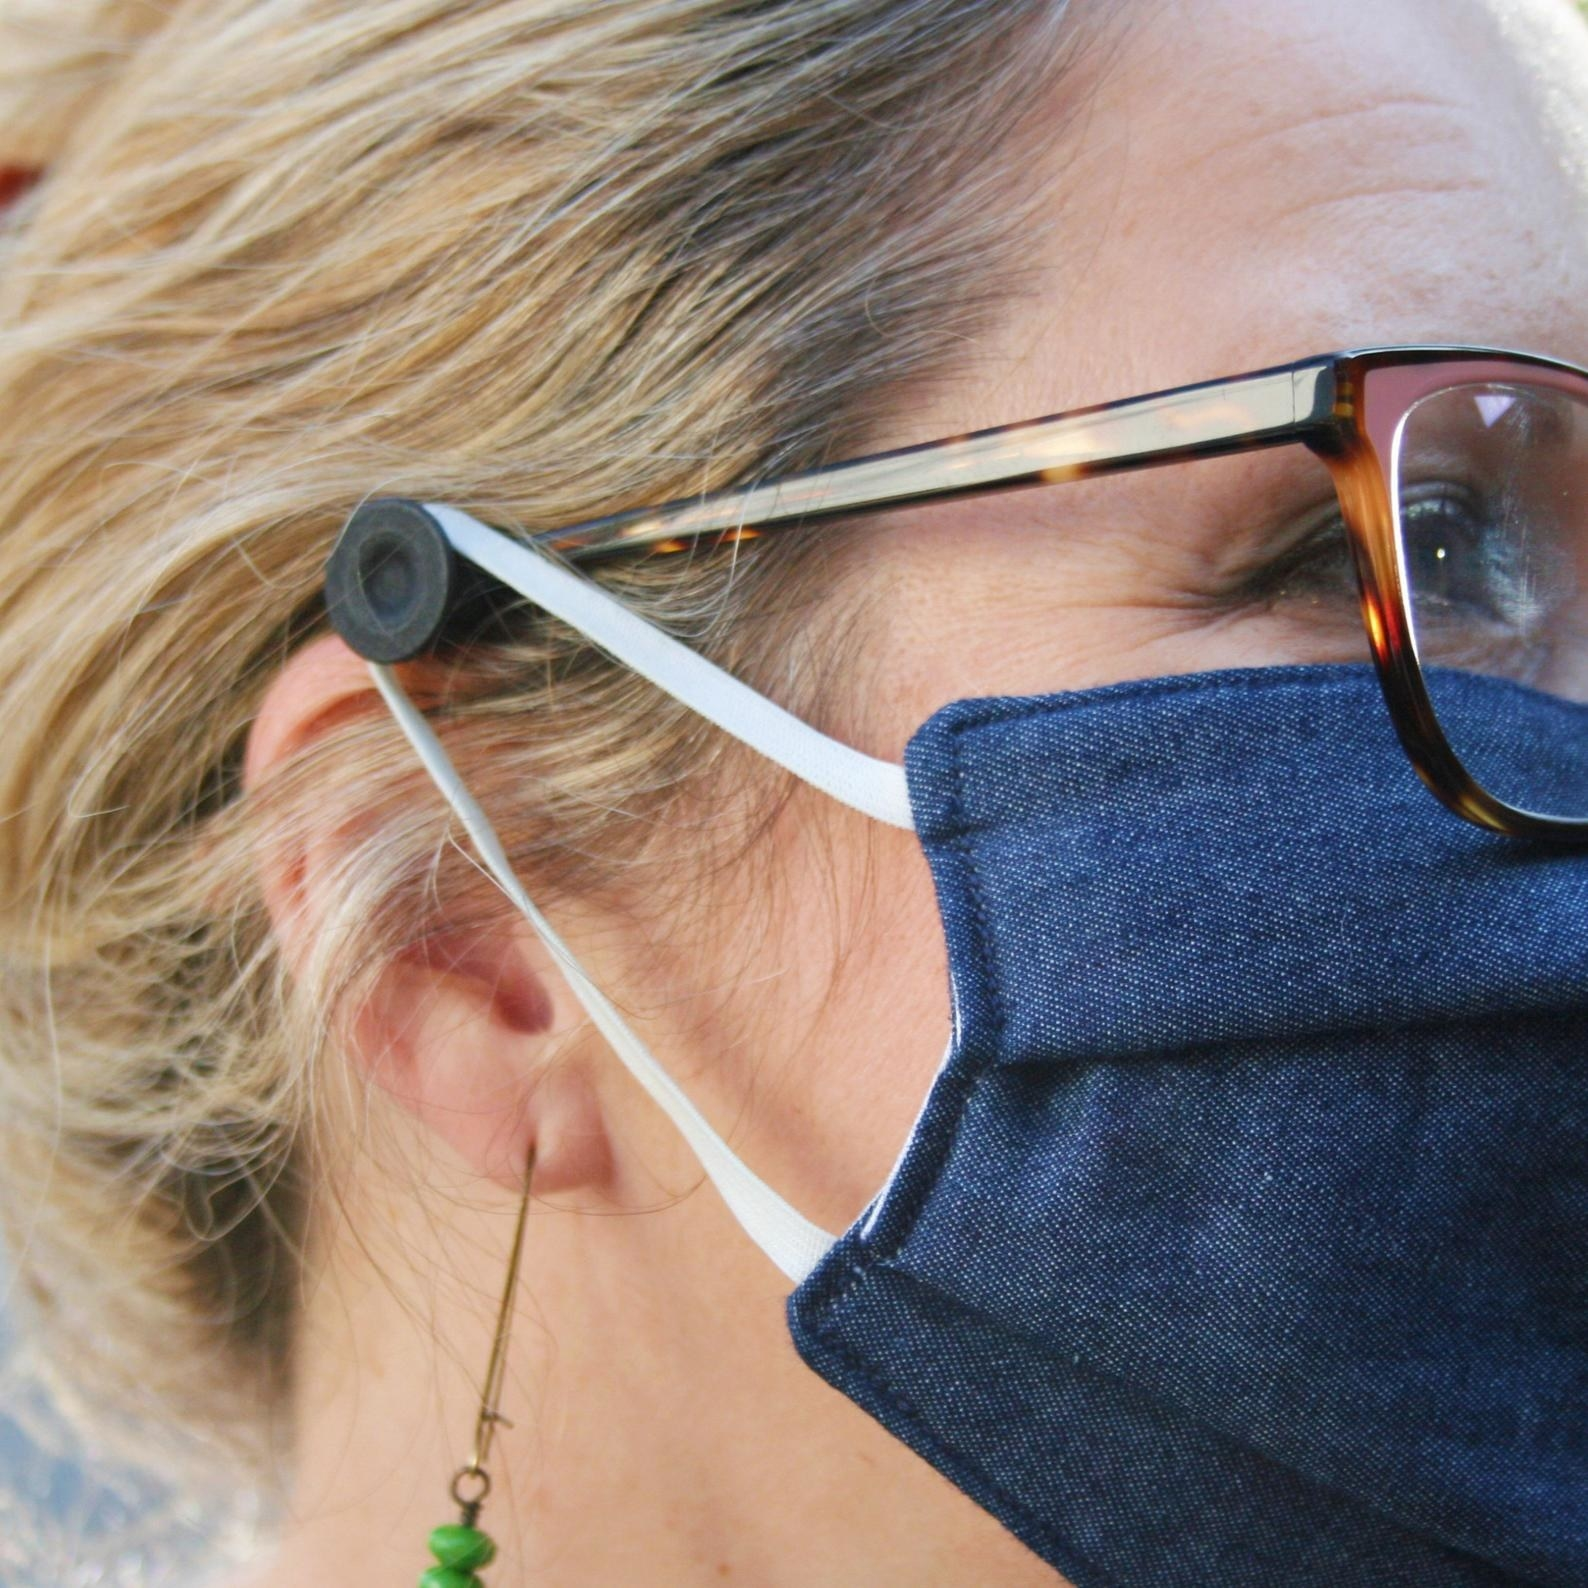 A model with a small black button installed on their glasses just beyond their ear that holds face mask straps in place